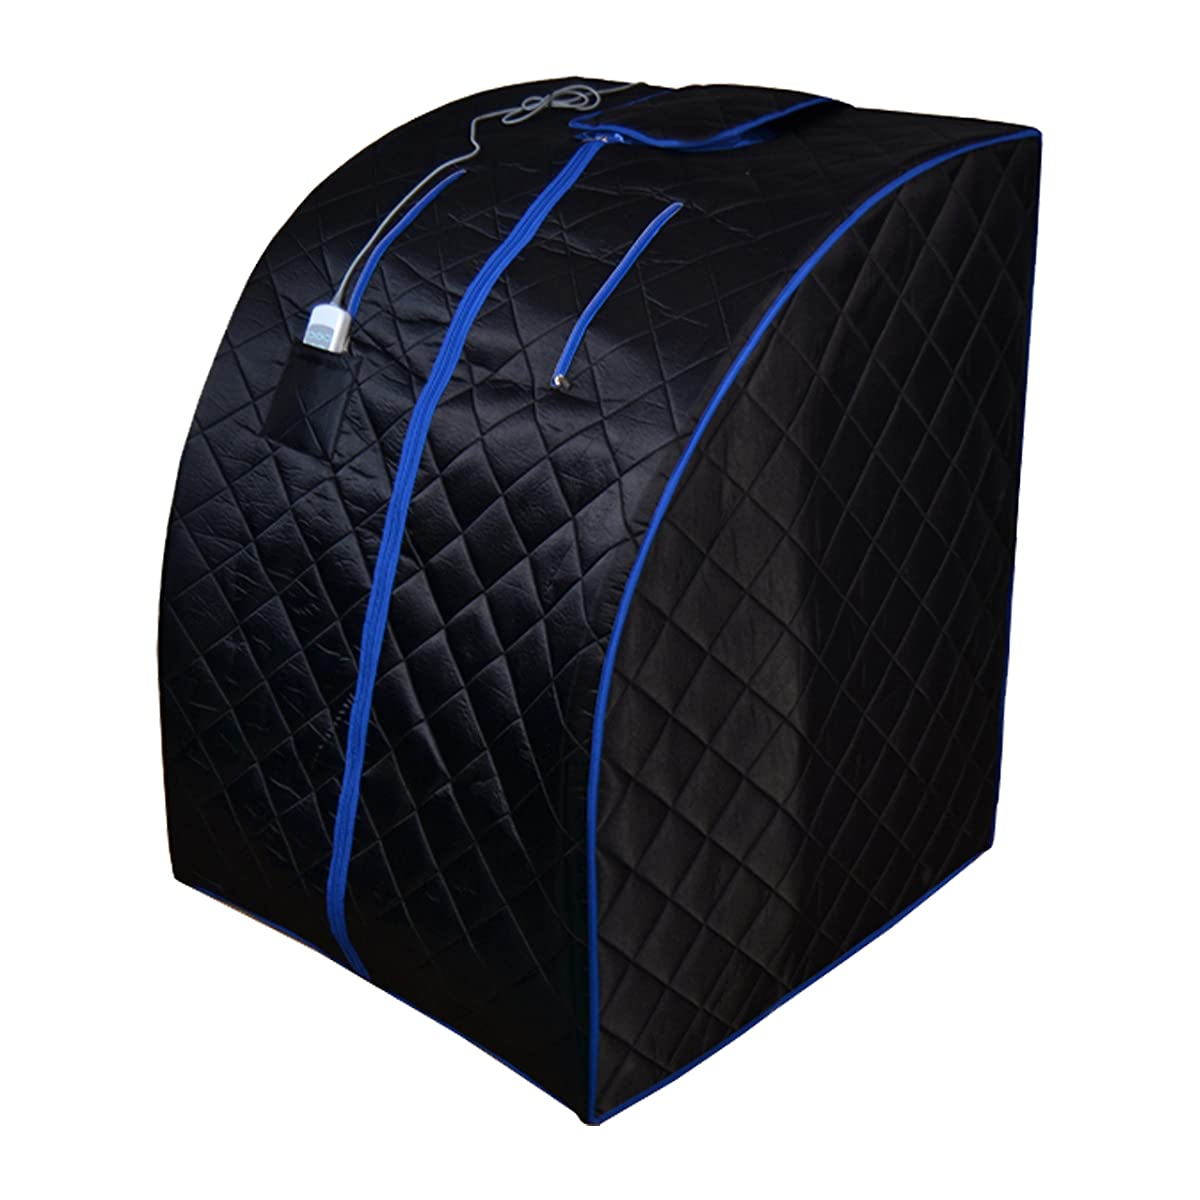 ALEKO PIN11BKBL Personal Folding Portable Home Infrared Sauna w/ Folding Chair and Foot Pad, Black w/ Blue Trim Color